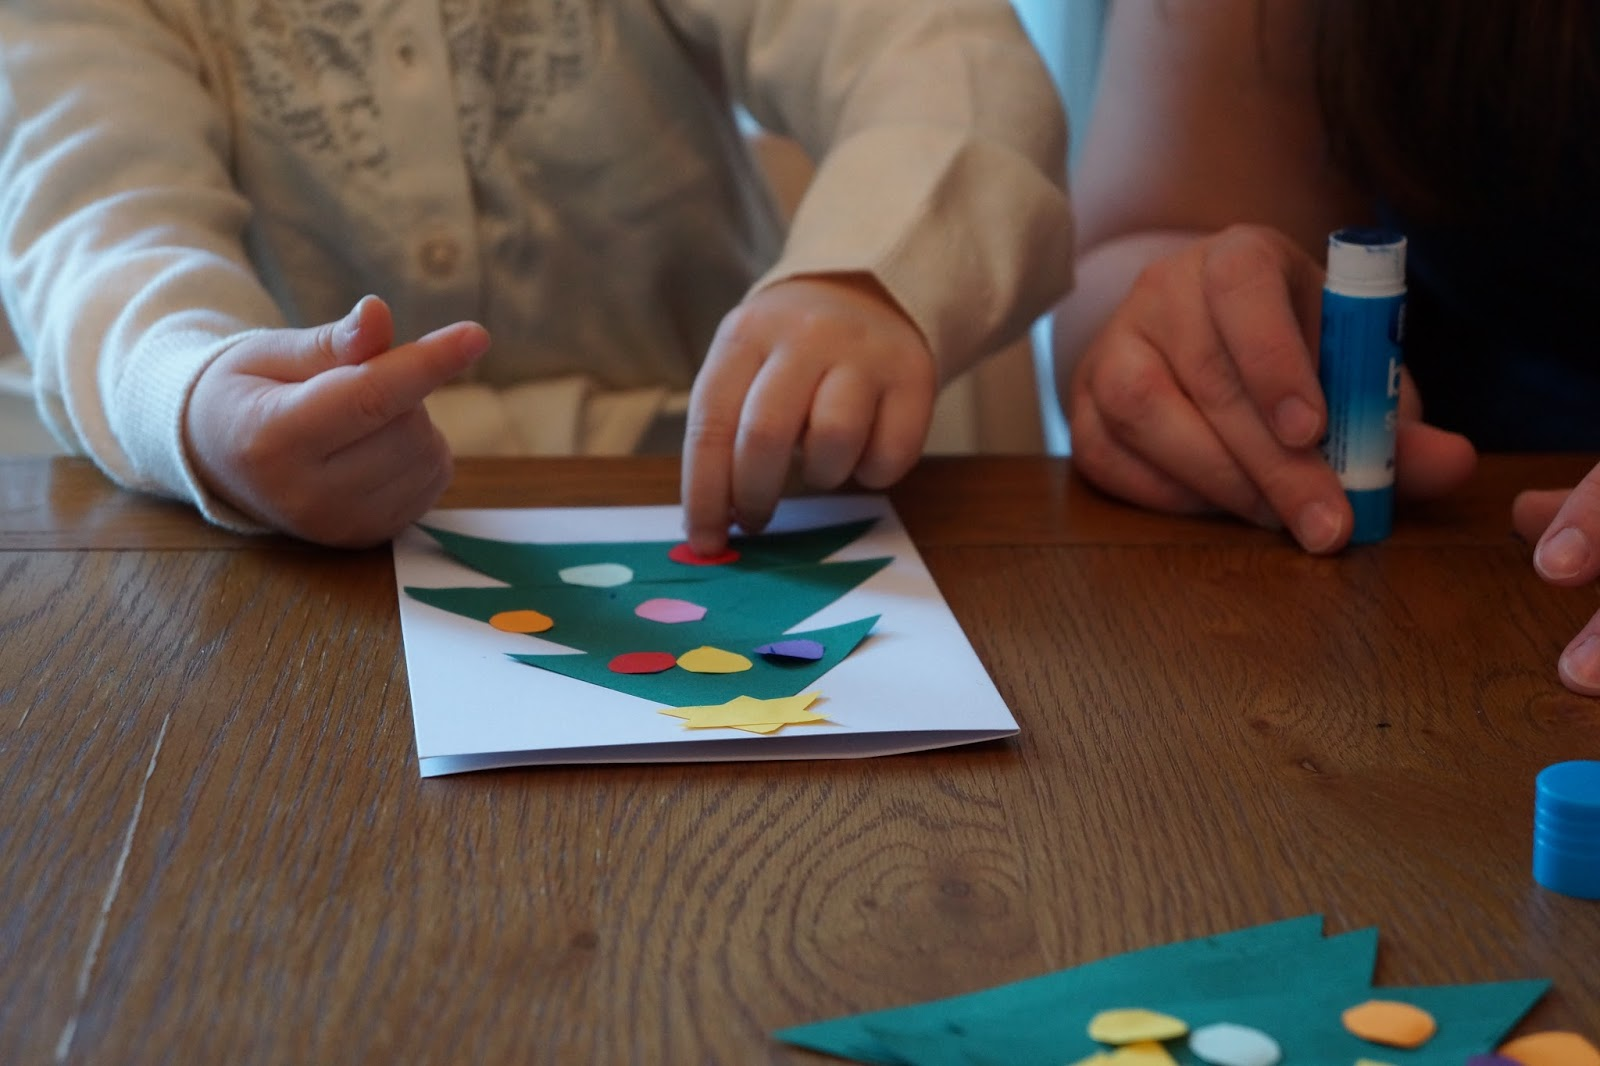 preschooler sticking dots on a paper